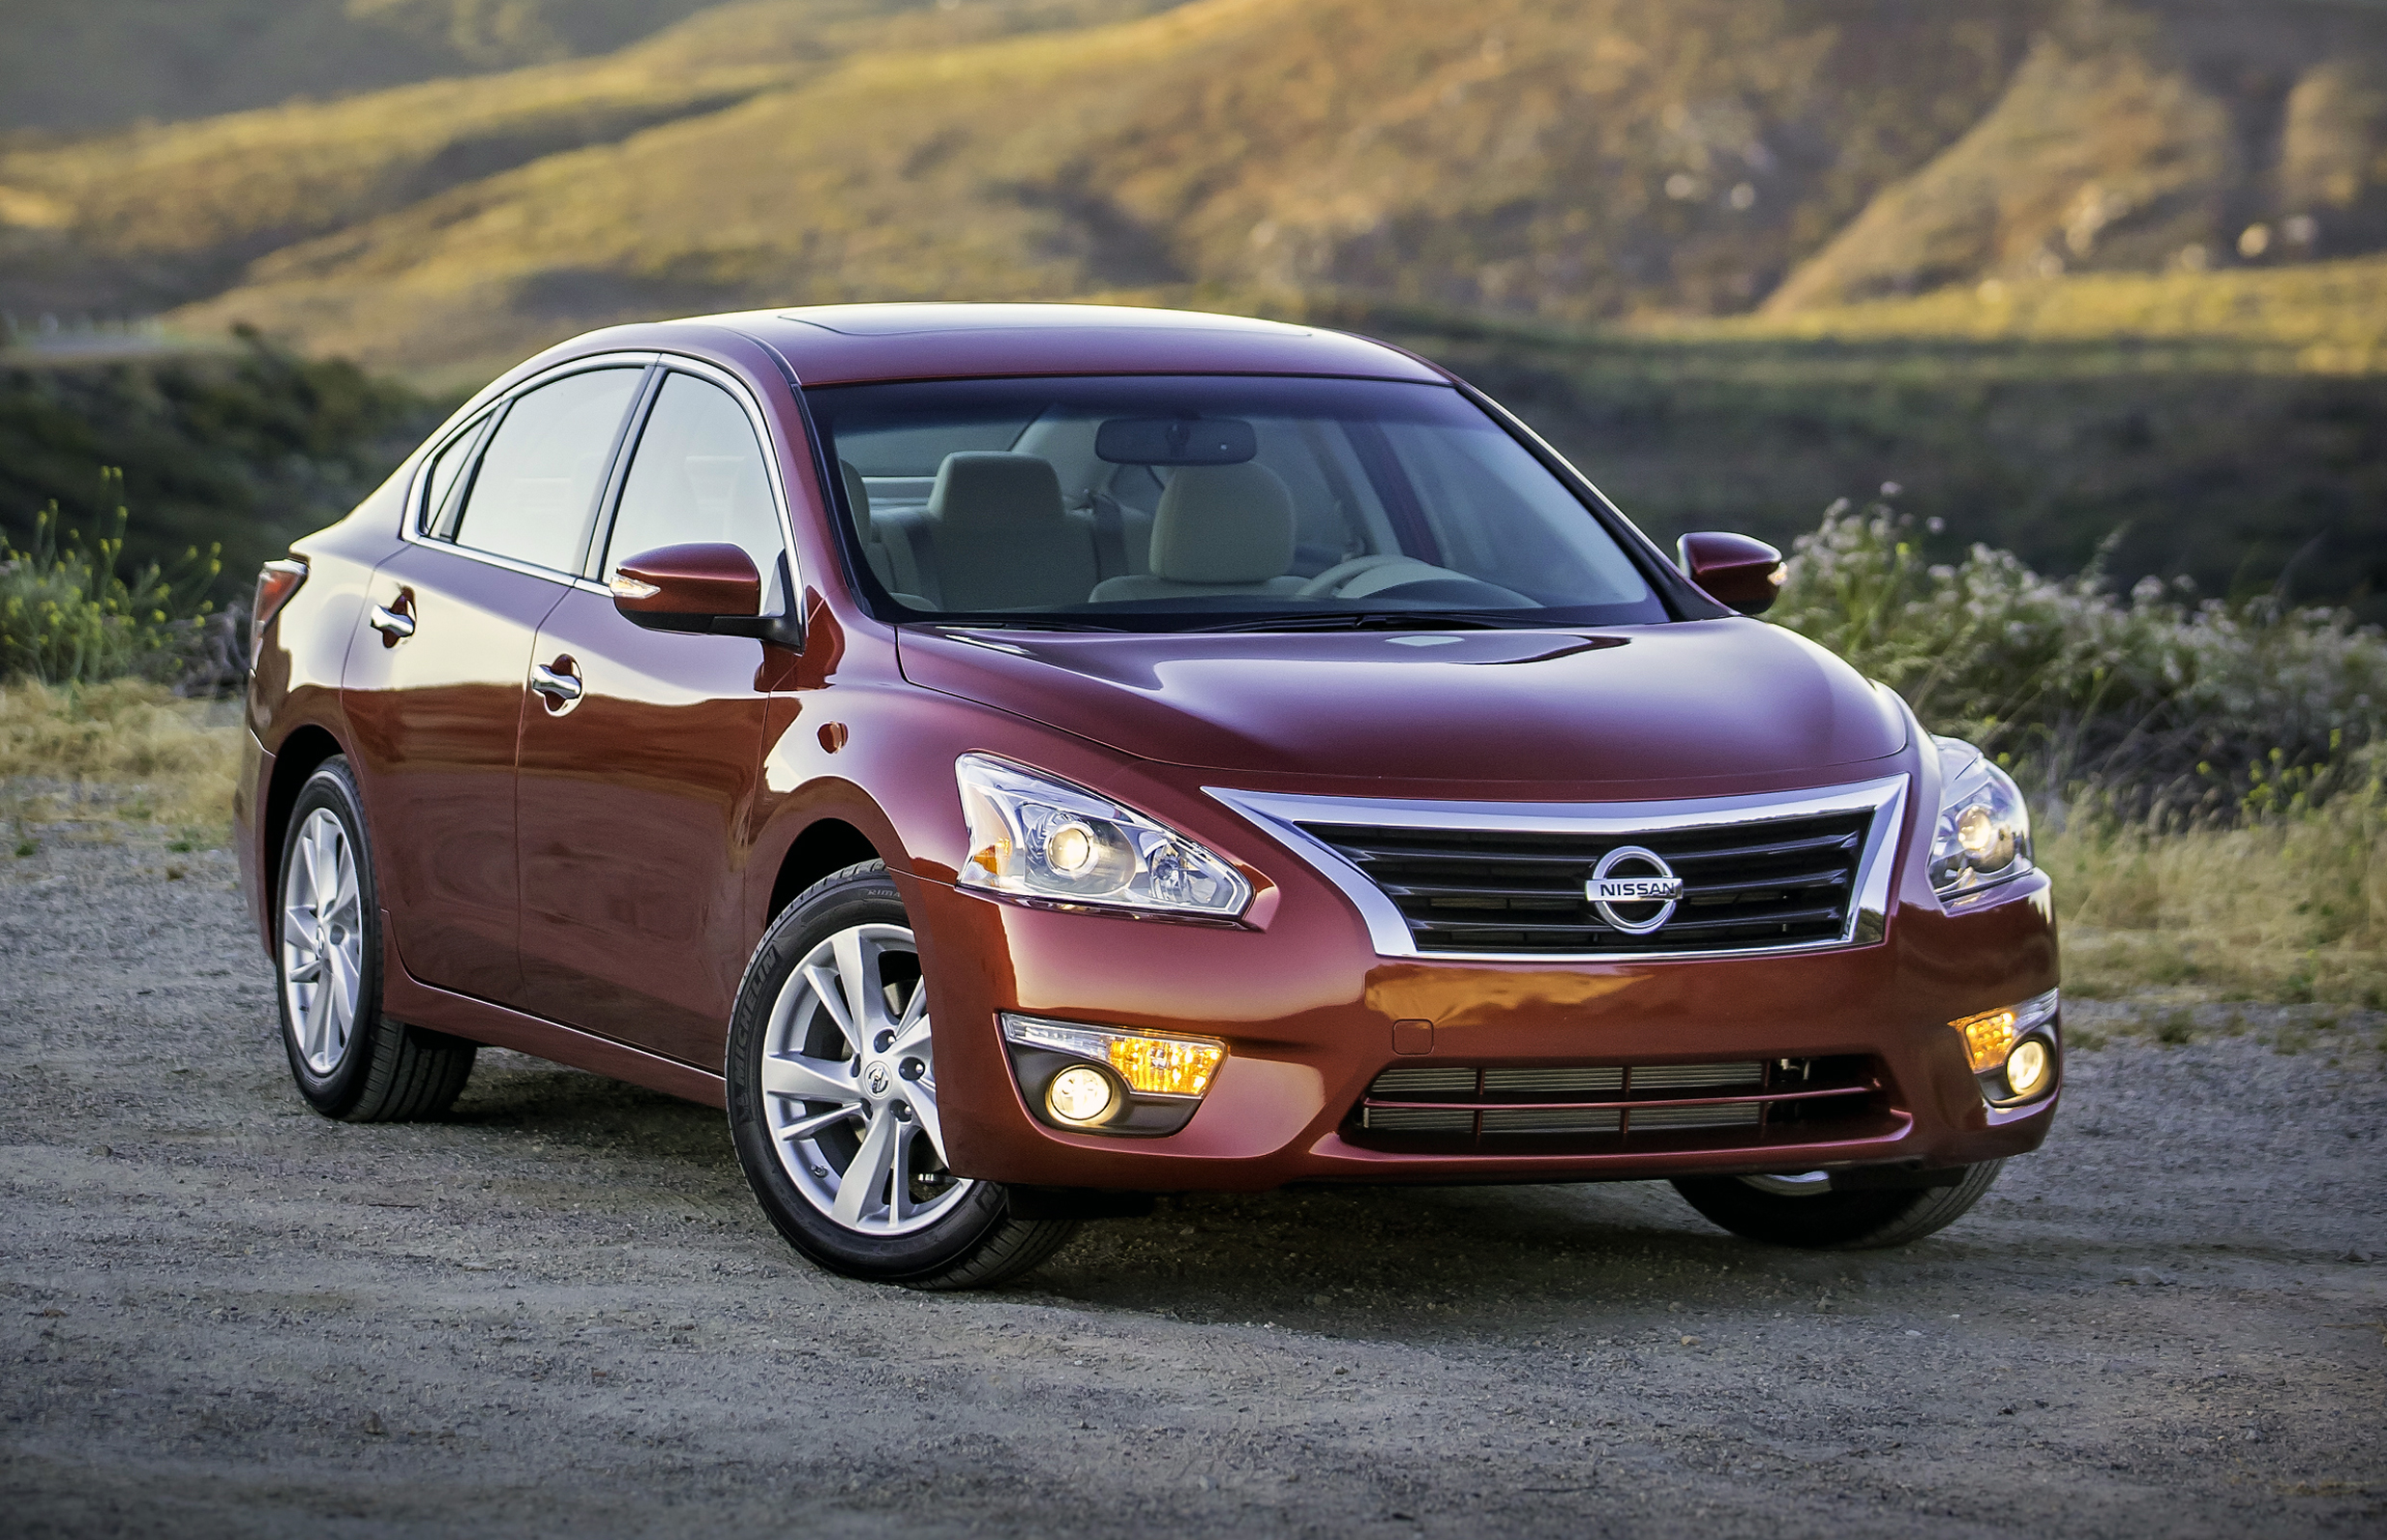 topworldauto photos of nissan sentra se photo galleries nissan sentra se